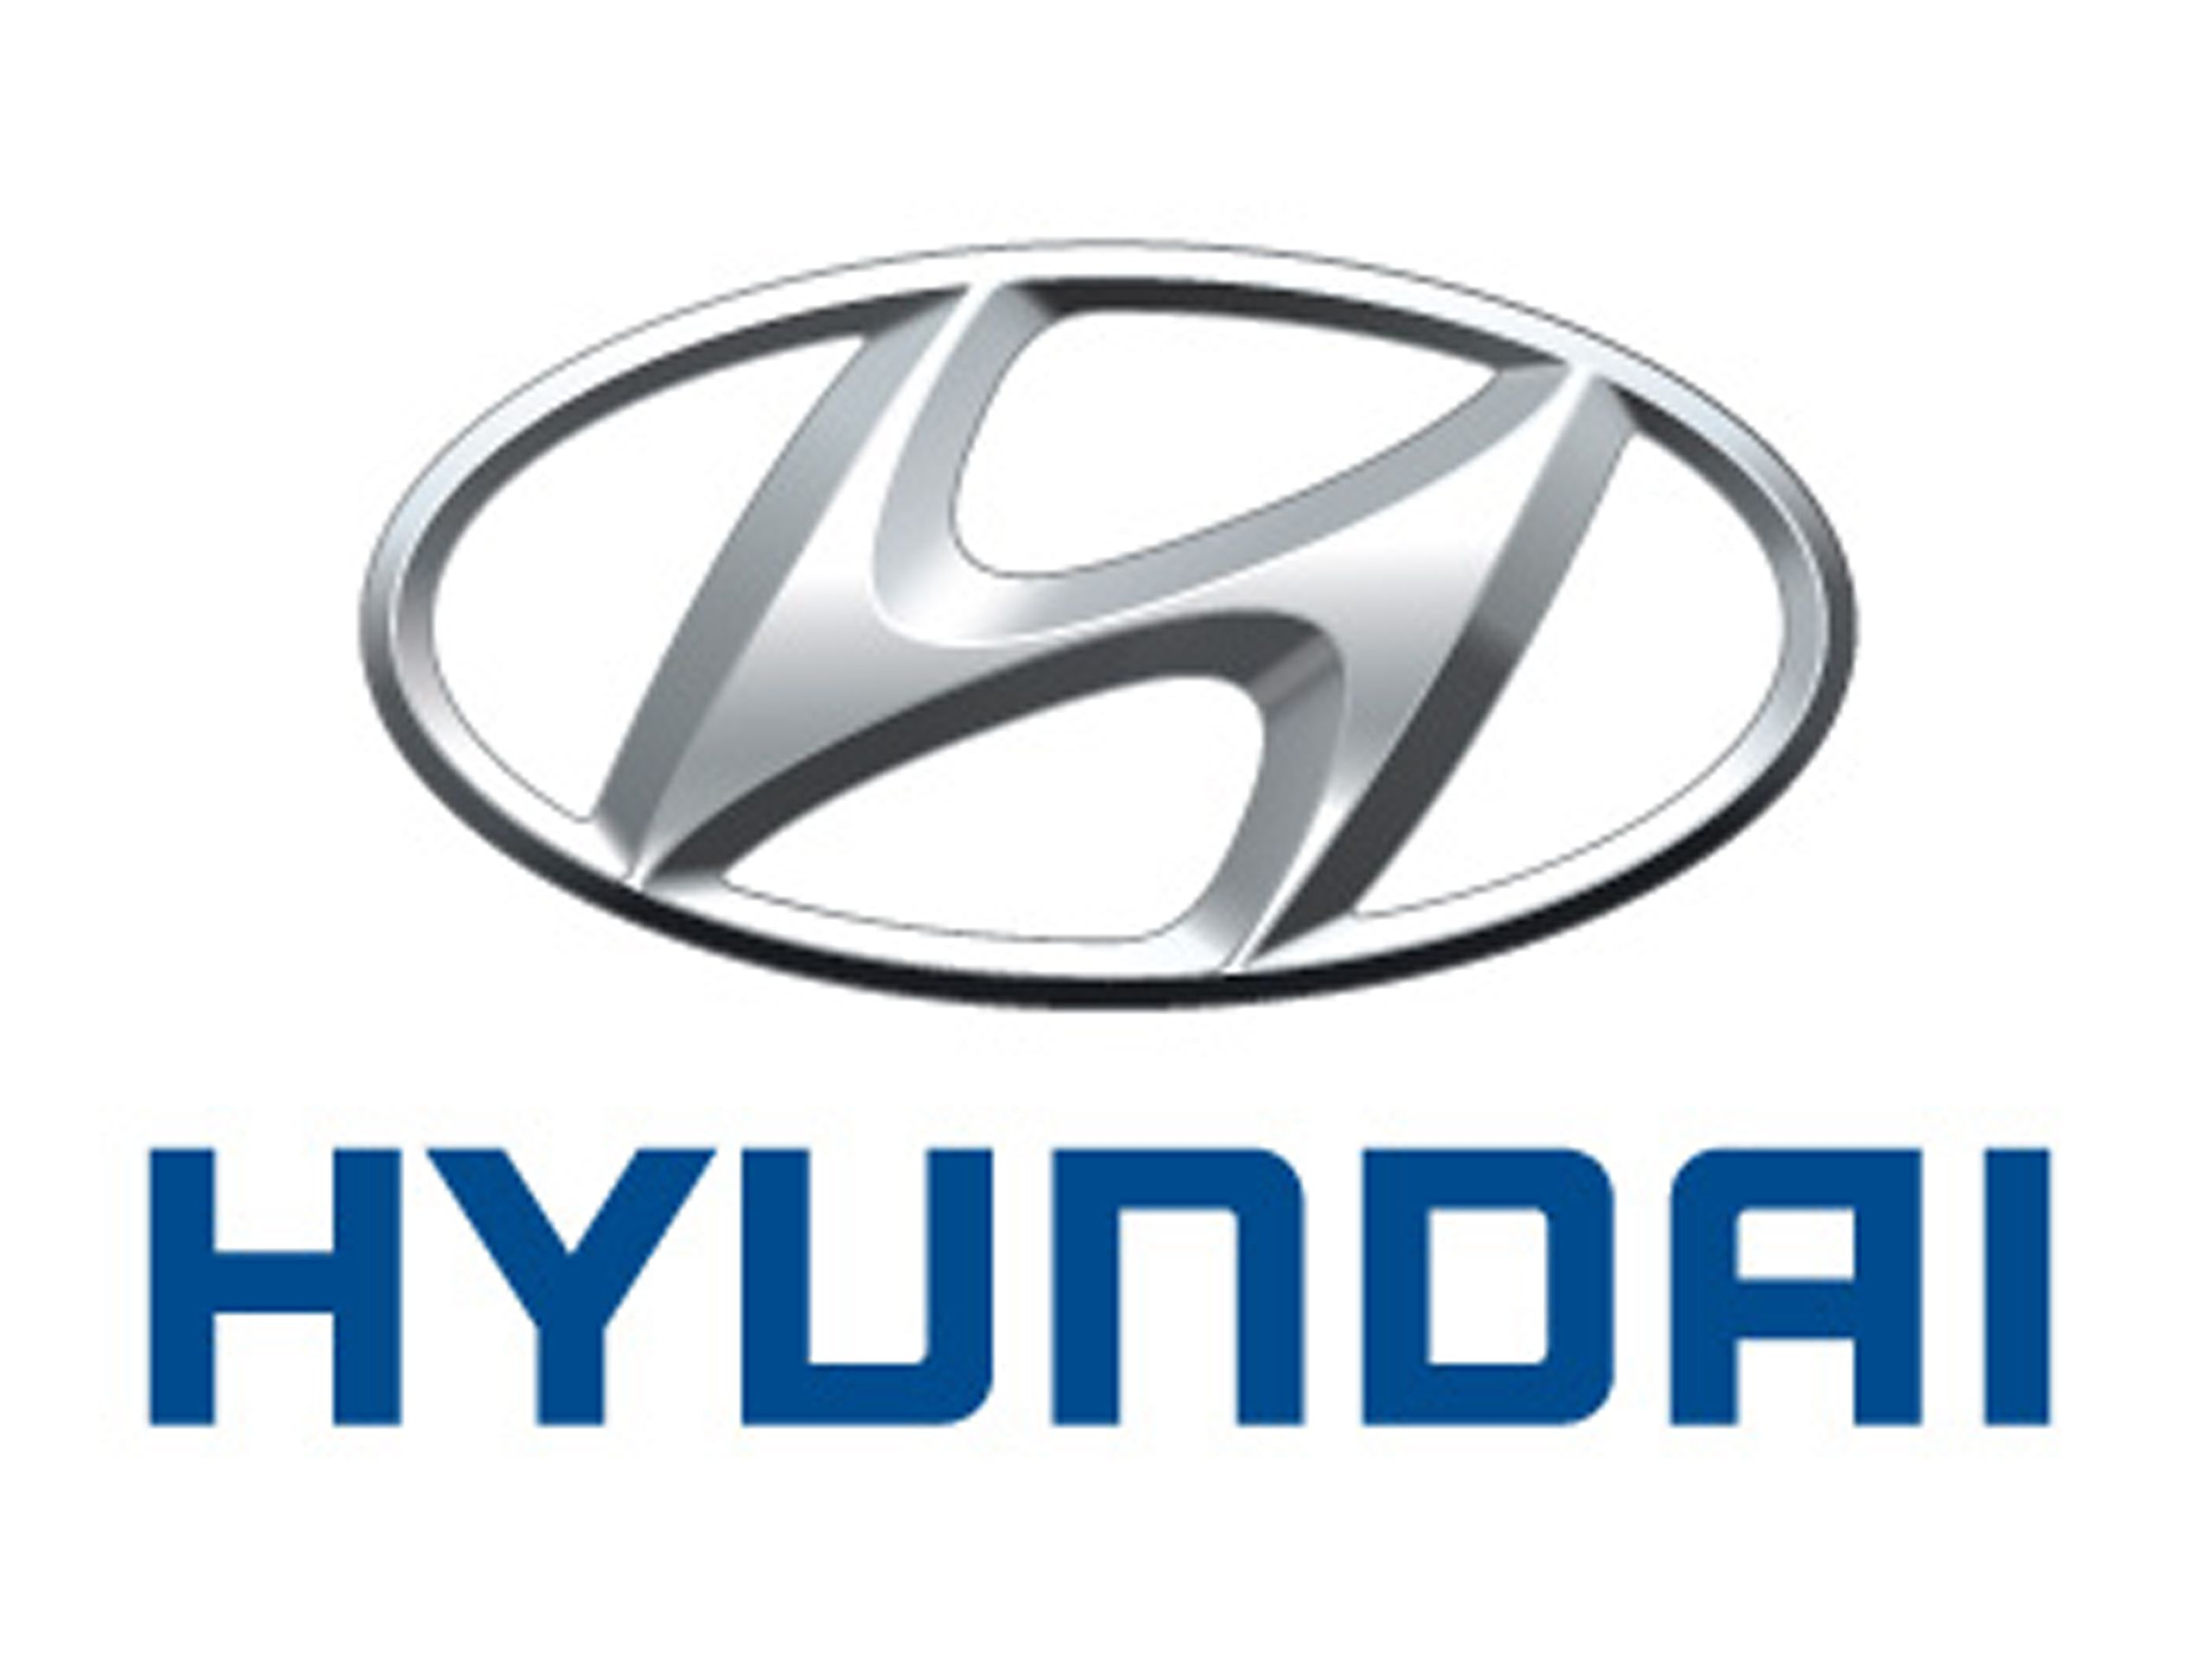 small resolution of download workshop manuals for hyundai all model at great price from emanualonline com